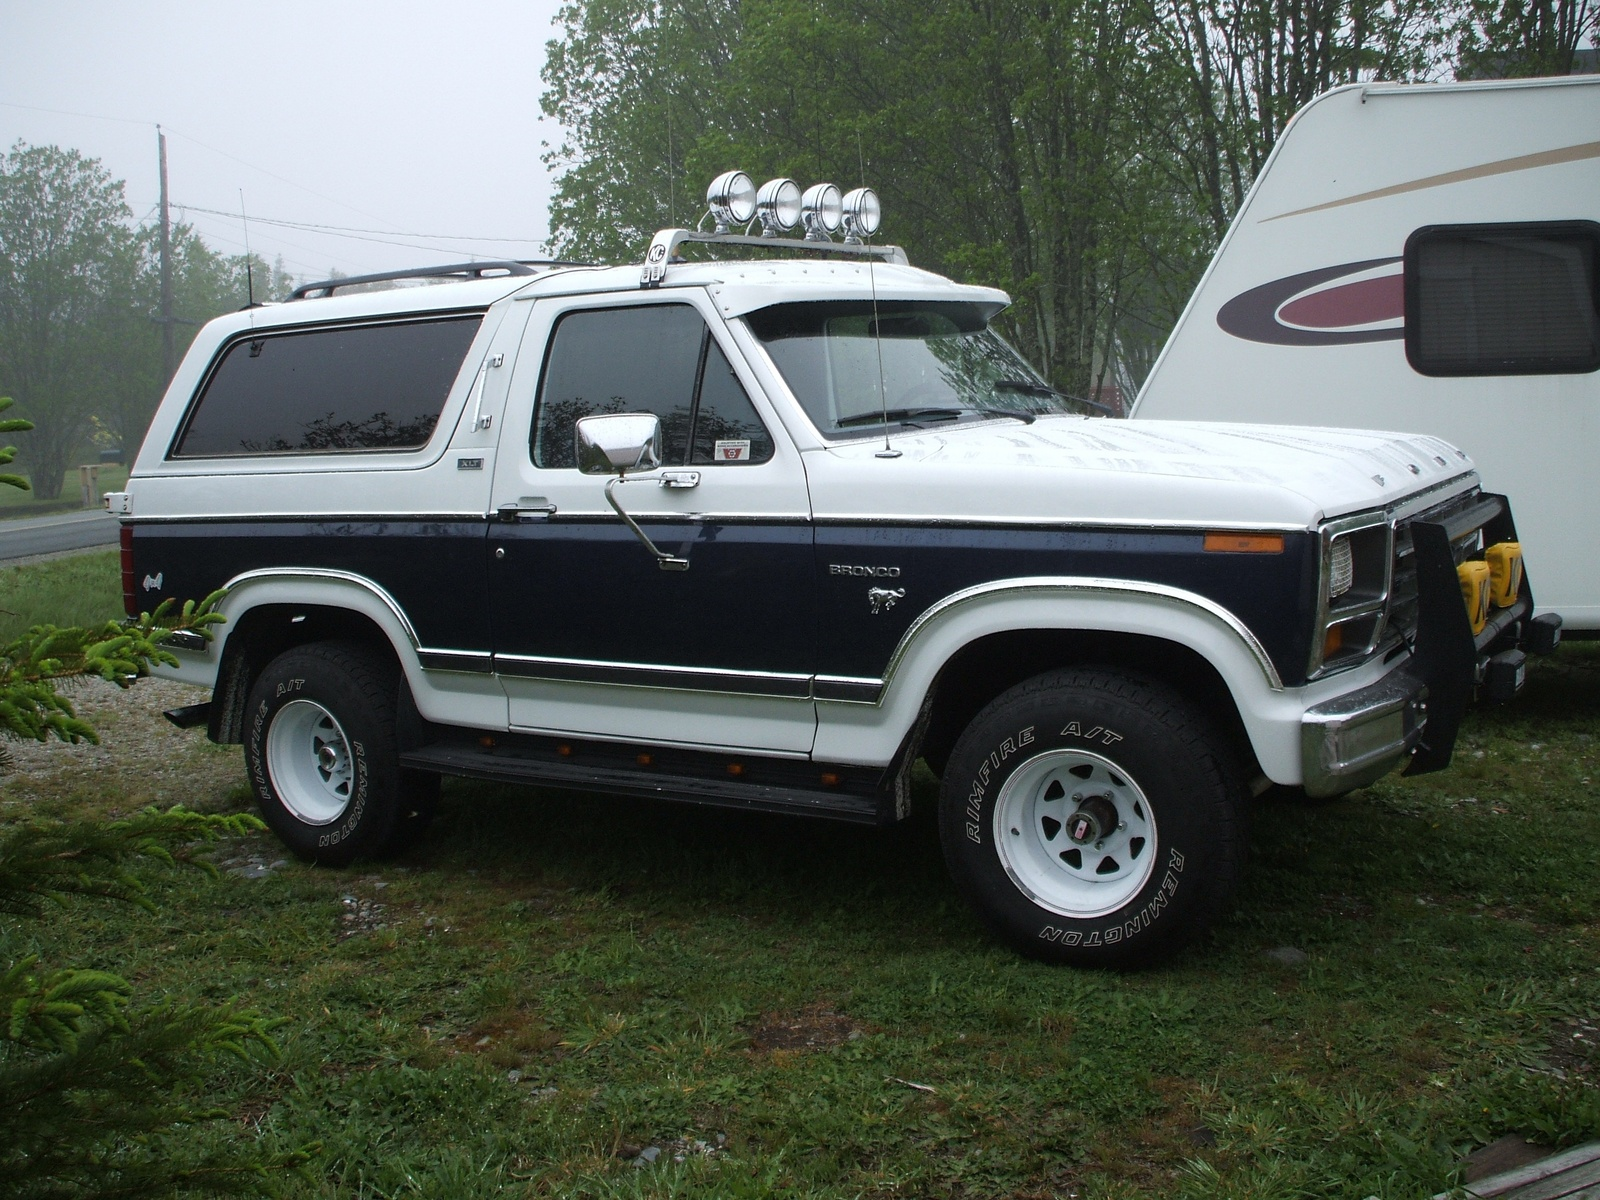 1981 Ford Bronco - Pictures - CarGurus